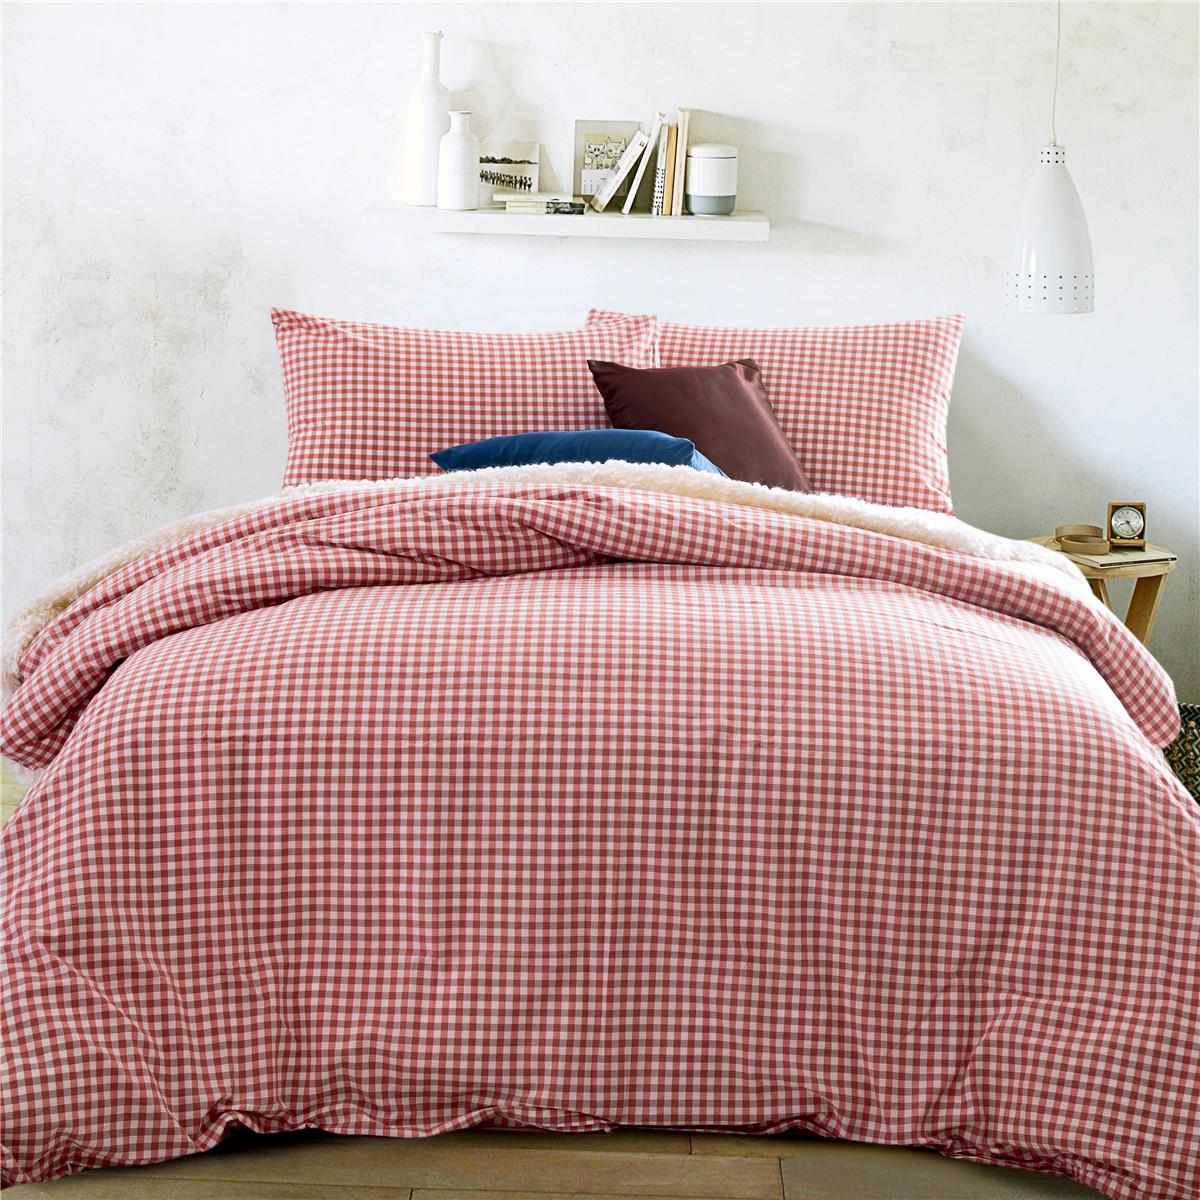 Gingham Bedding Sets